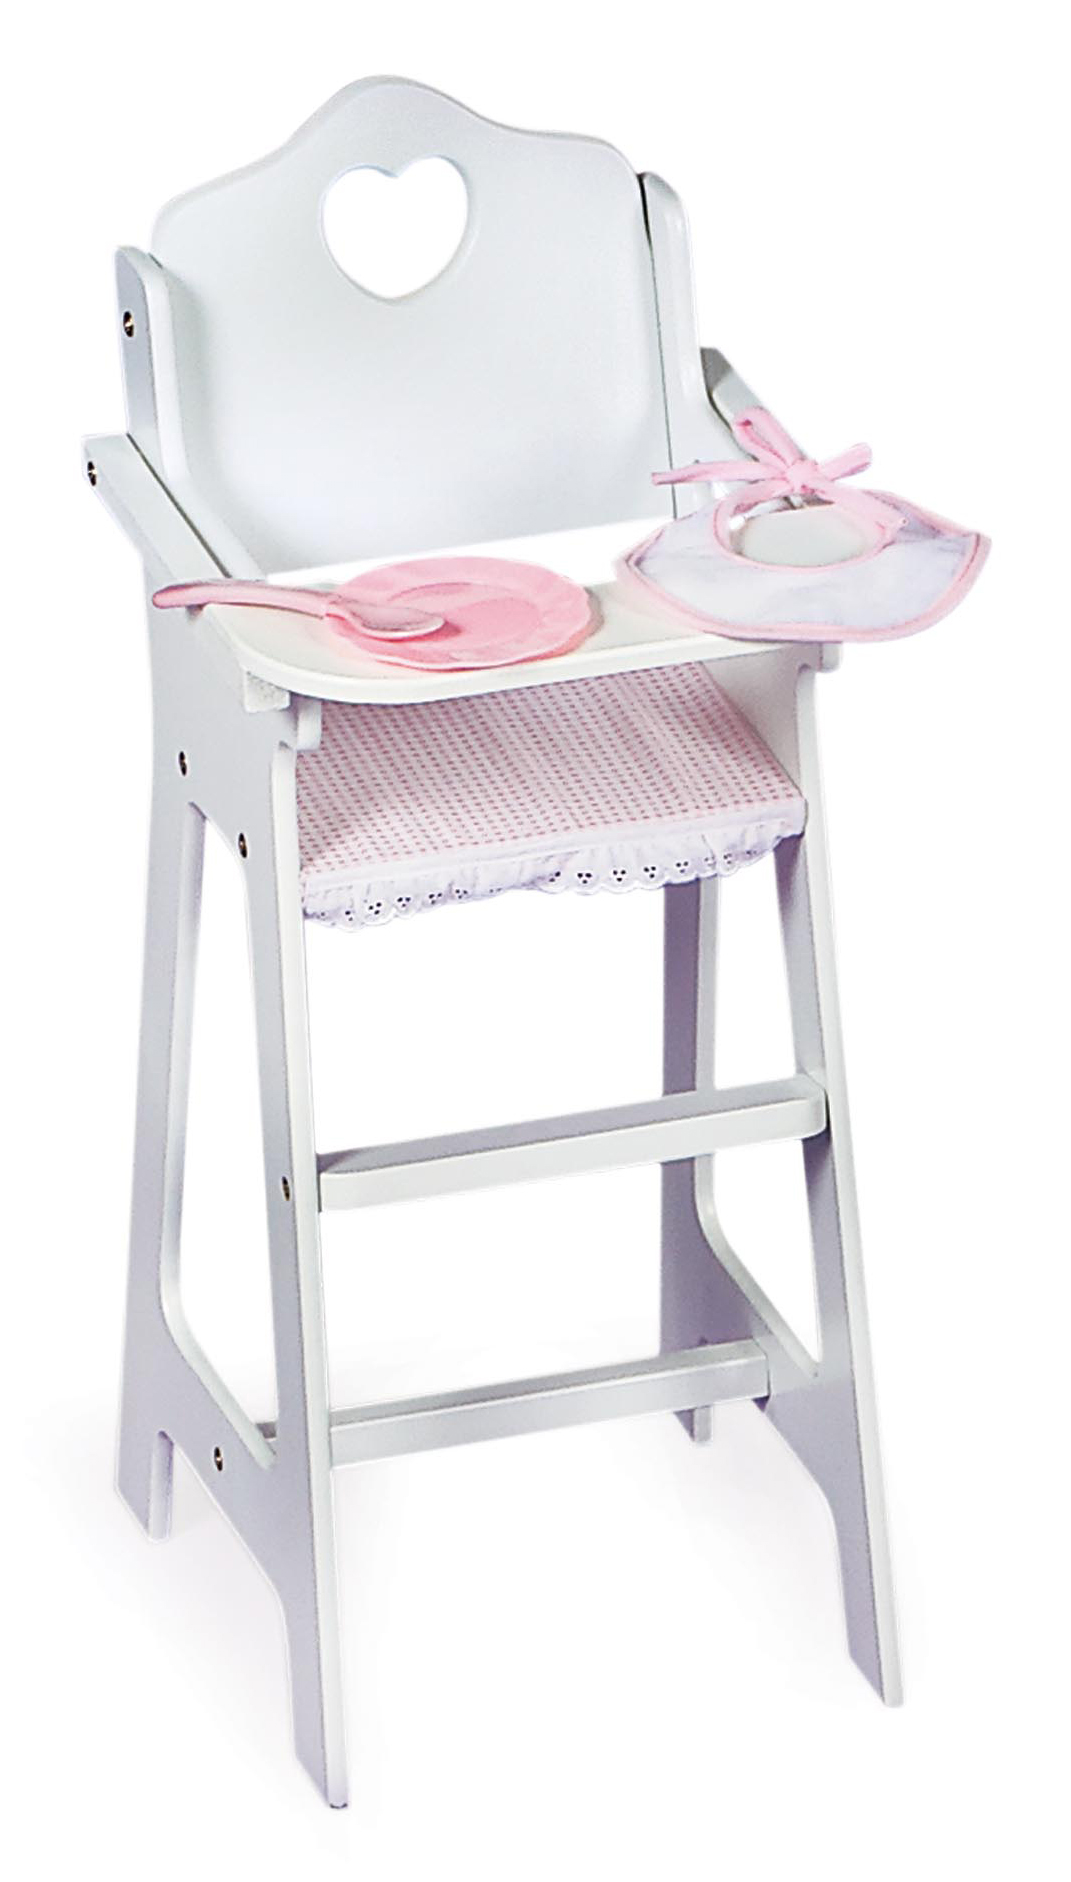 Badger Basket Gingham Doll High Chair With Plate, Bib, And Spoon   White/